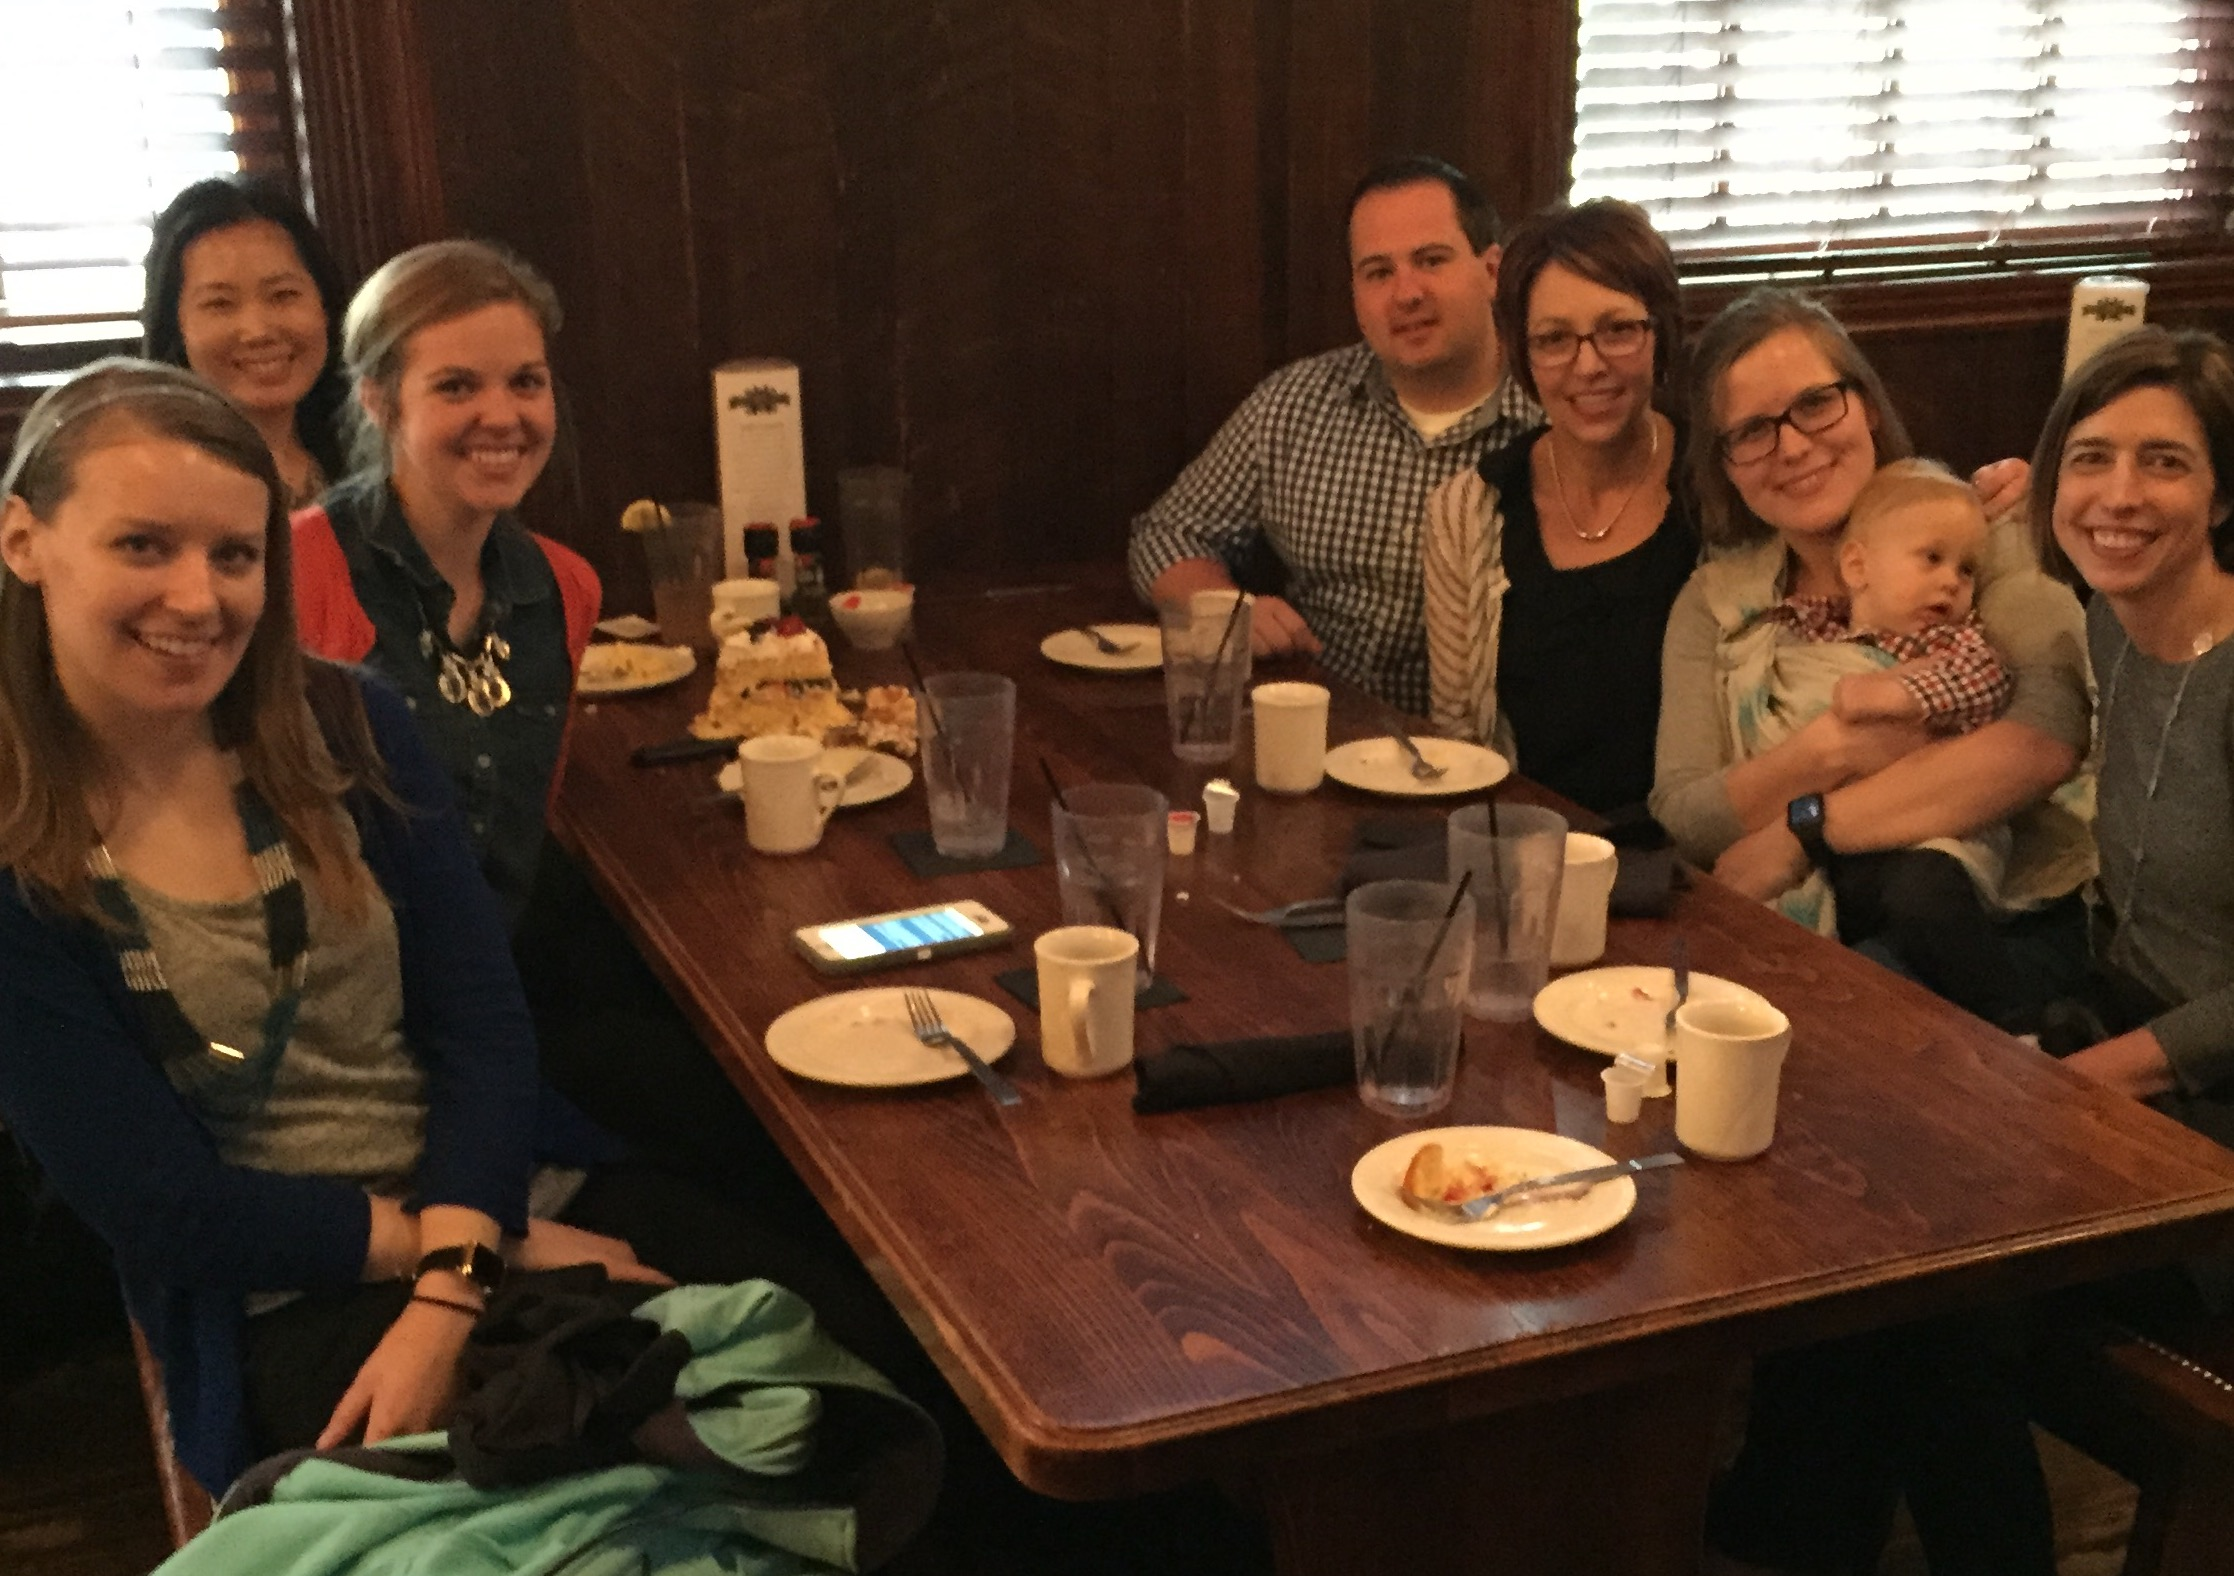 SNL- MSU campus end of semester lab lunch at Dublin Square. Right after devouring delicious cake to celebrate April birthdays (Kelly, Saralyn, Chelsea)!